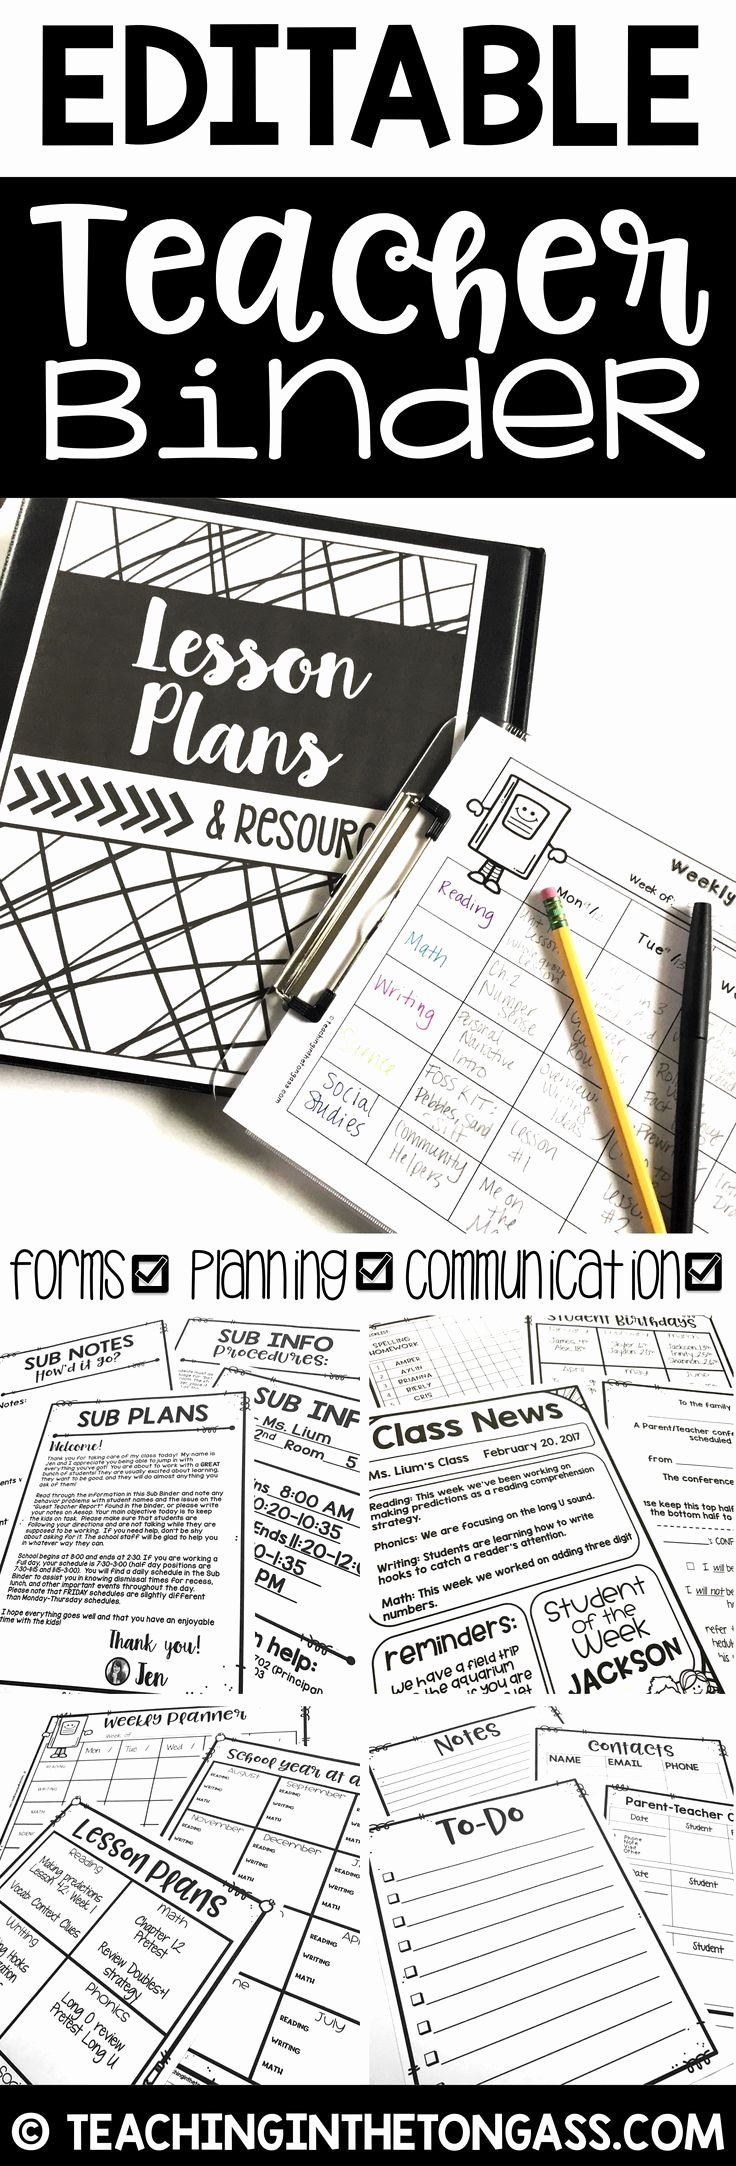 Editable Lesson Plan Template Fresh 25 Best Ideas About Binder Cover Templates On Pinterest